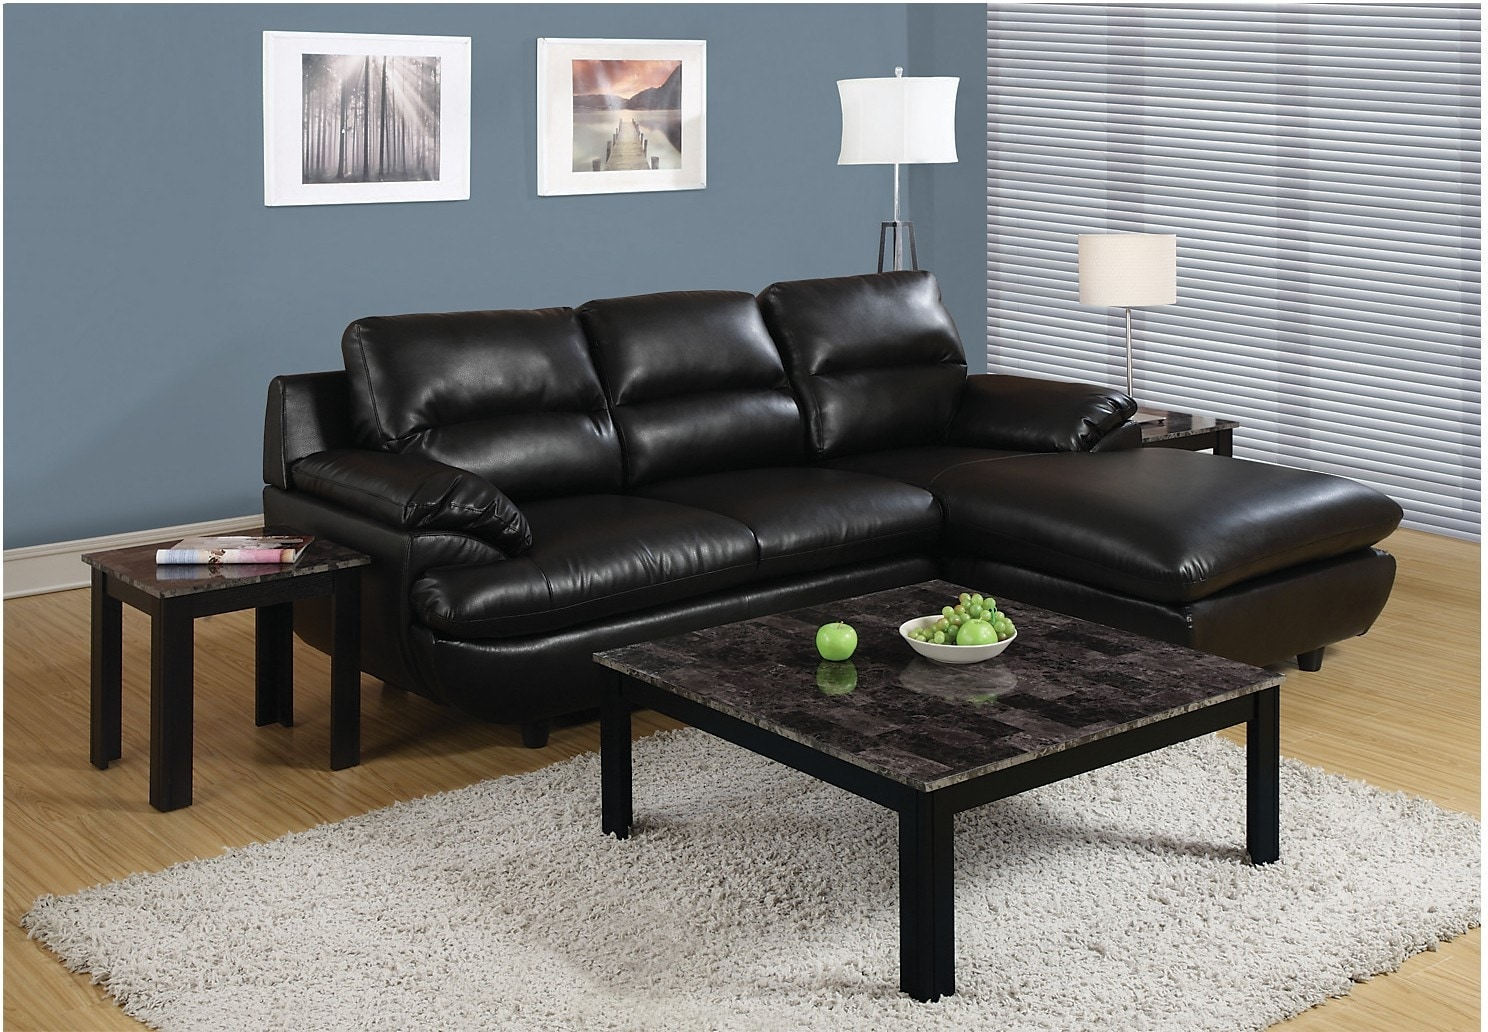 Malta 3Piece Coffee and Two End Tables Package The Brick